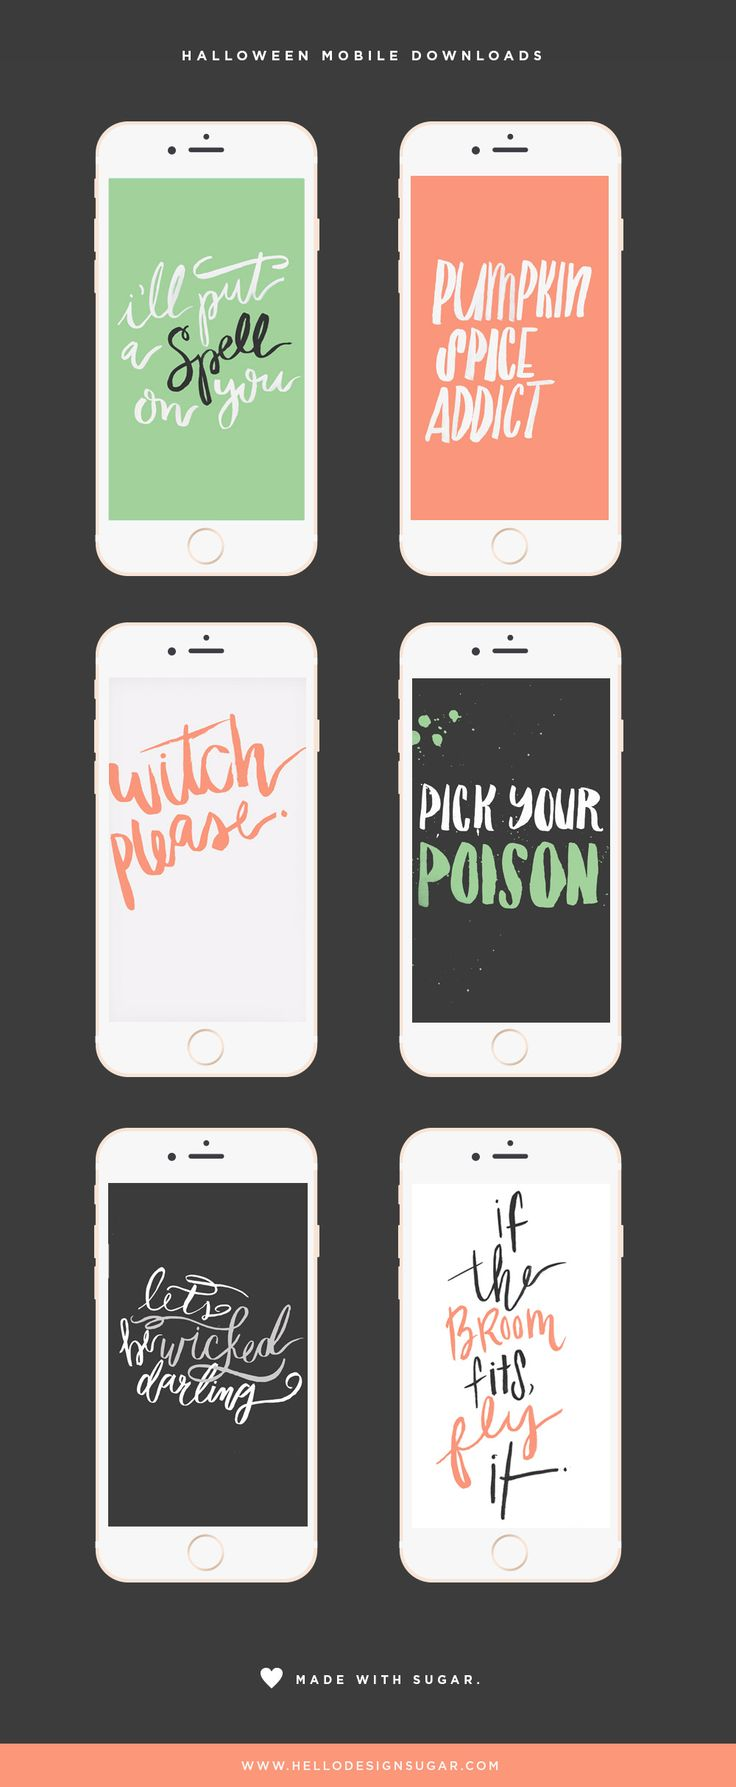 Dress up your phone for Halloween with these super cute Mobile Wallpapers! Which one is your fav?